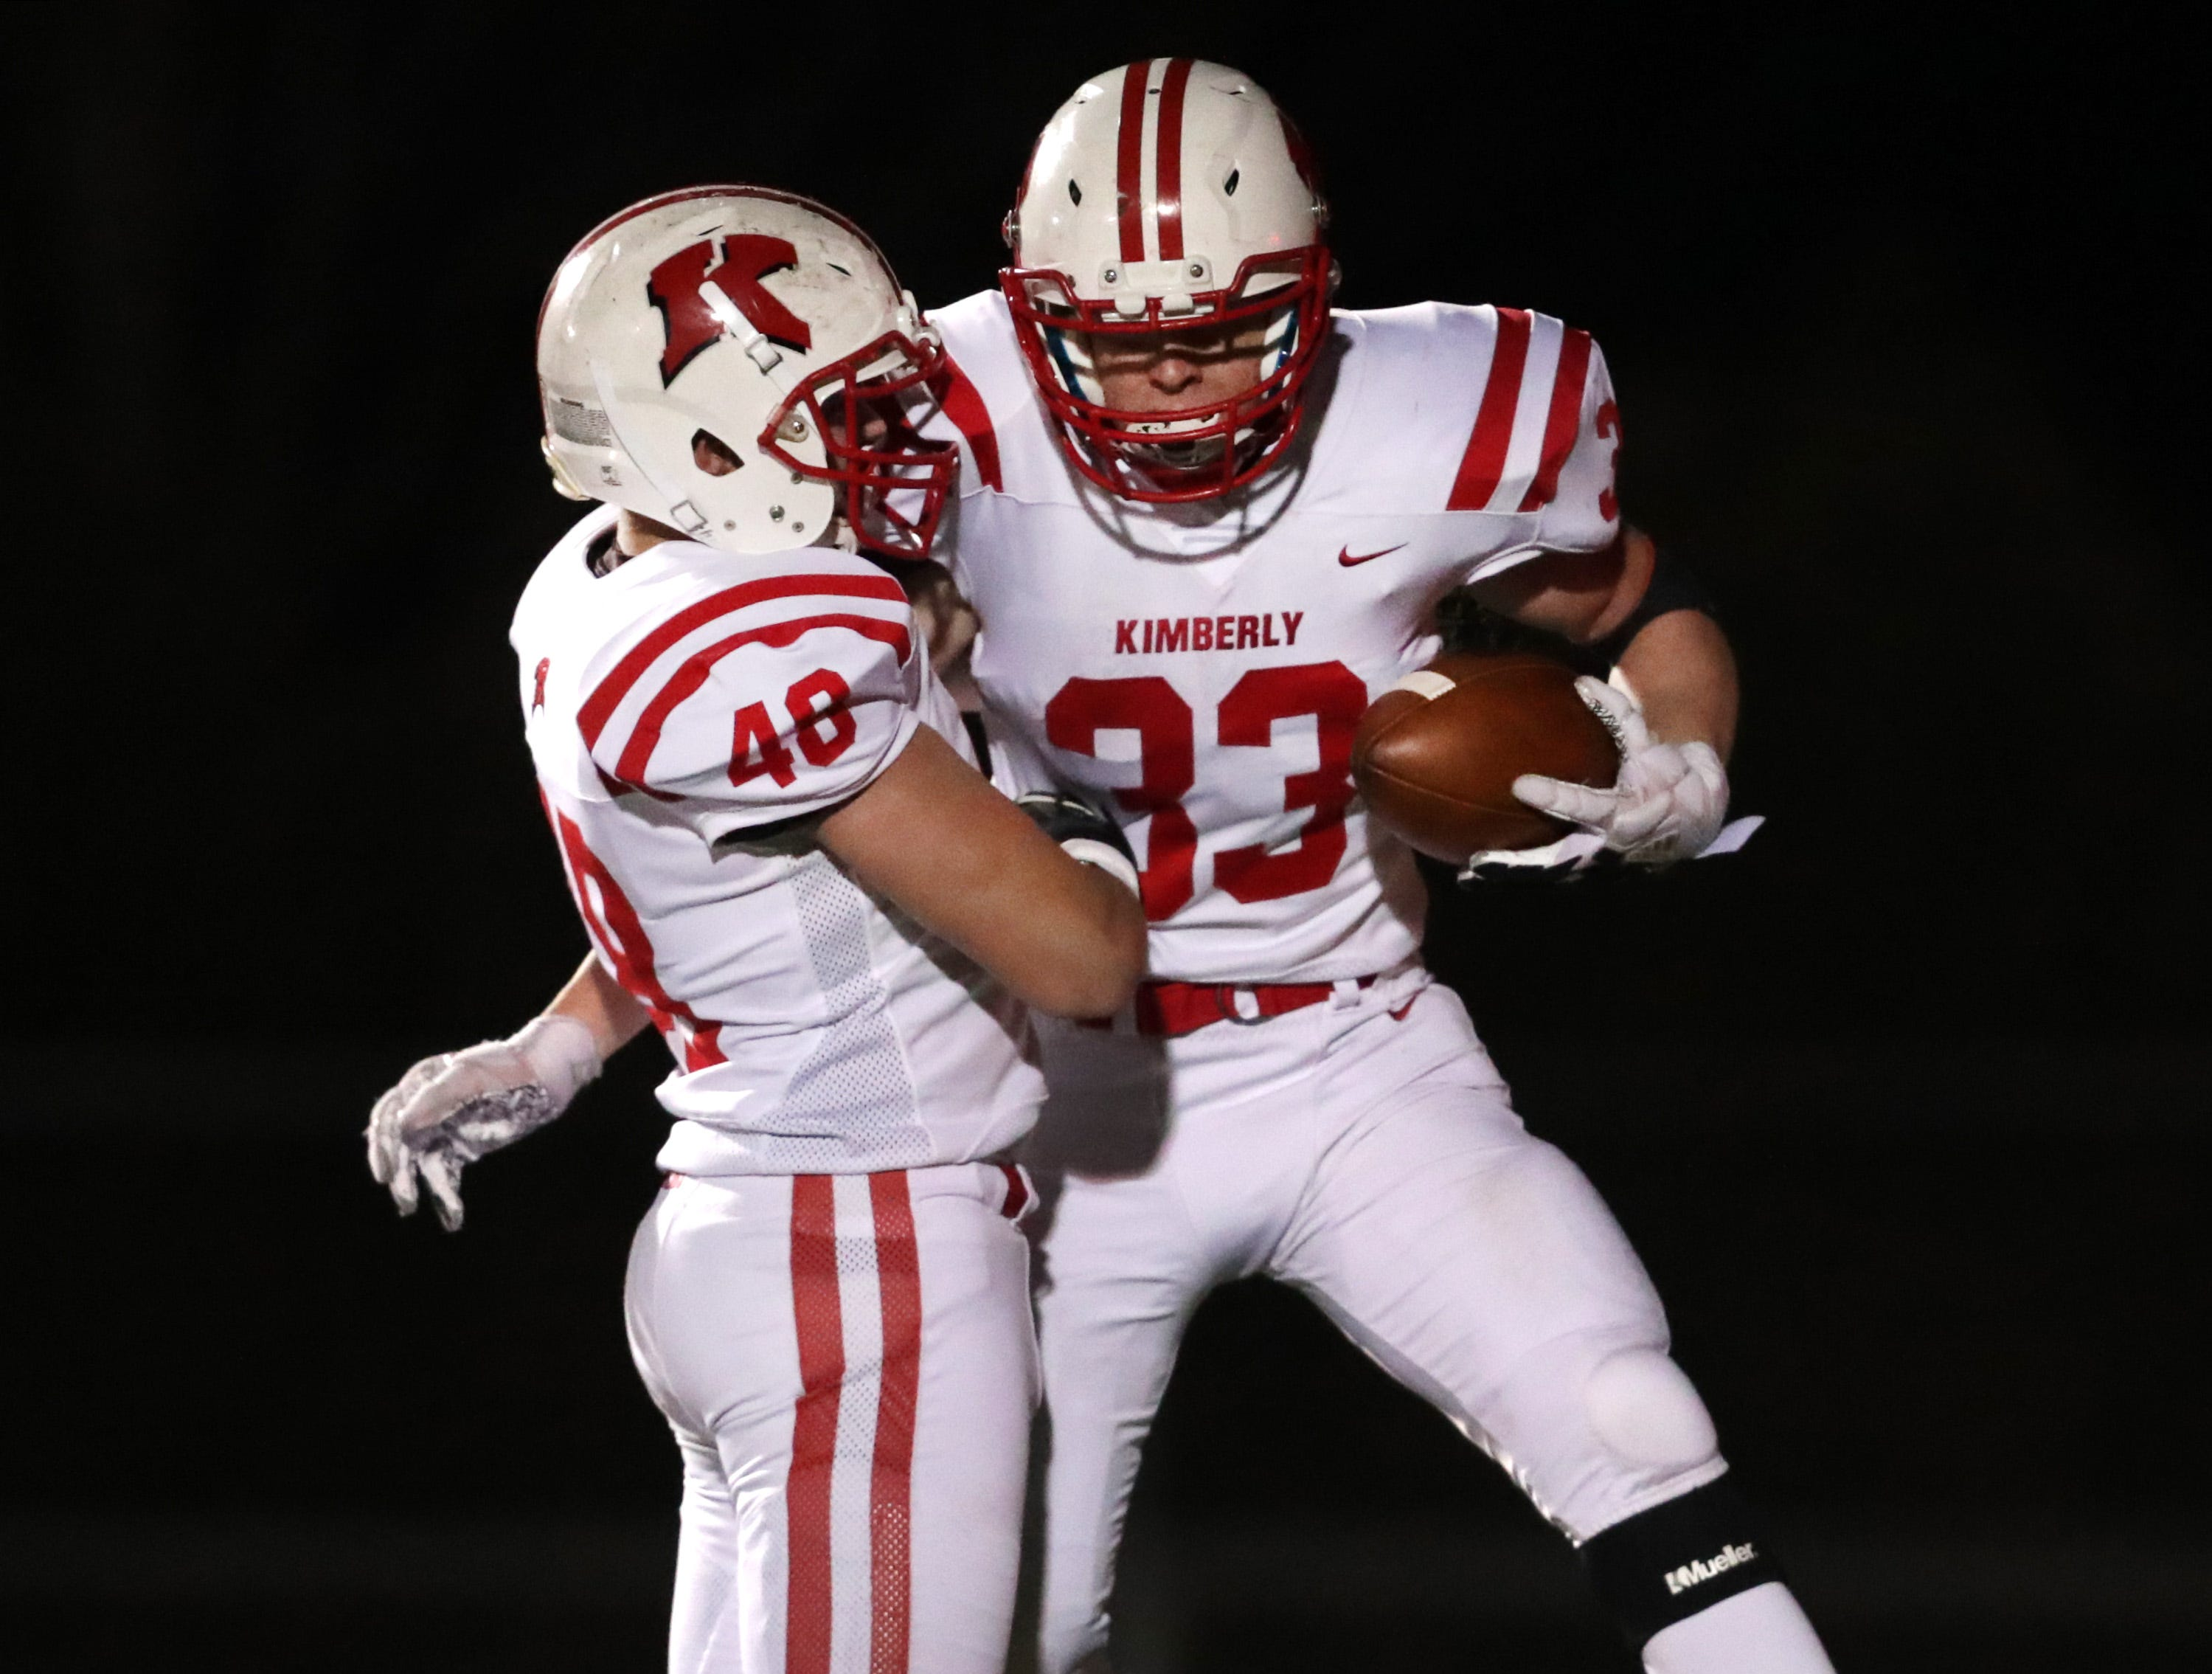 Kimberly High School's #33 Caleb Frazer and #48 Will Hammen celebrate a fourth quarter touchdown against Bay Port High School during their WIAA Division 1 state quarterfinal football game on Friday, November 2, 2018, in Suamico, Wis.  Kimberly defeated Bay Port 38 to 20. Wm. Glasheen/USA TODAY NETWORK-Wisconsin.